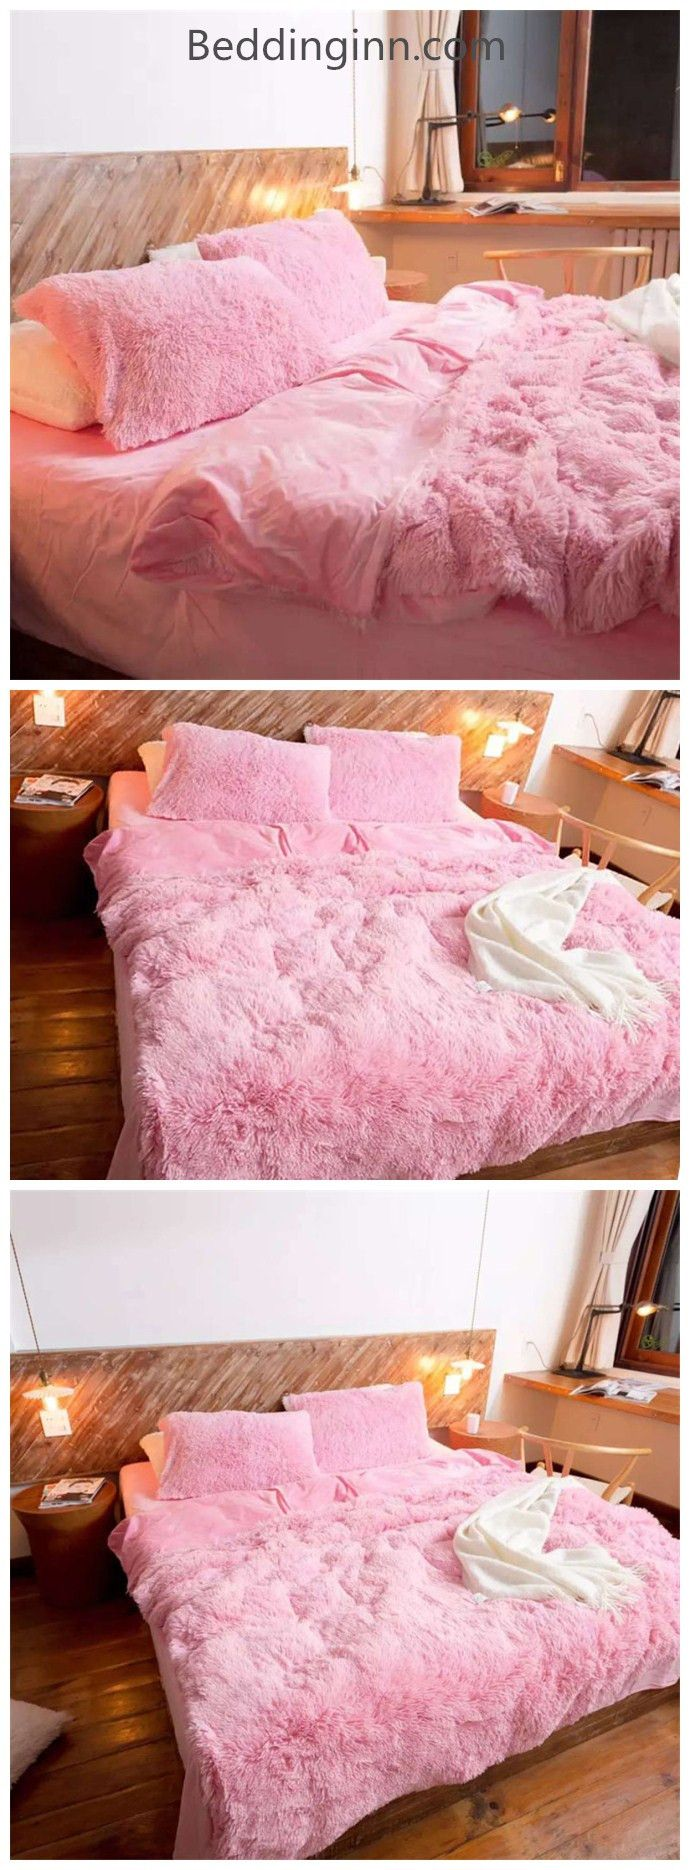 It looks so cute and lovely. So soft and smooth to touch, suitable to people who have sensitive skin or the babies. For its healthy materials and natural fabrics. The pink bedding sets is so bright and beautiful, add more sweetness and joy to your home. Absolutely protect you from any cold in winter and keep you in a good dream.